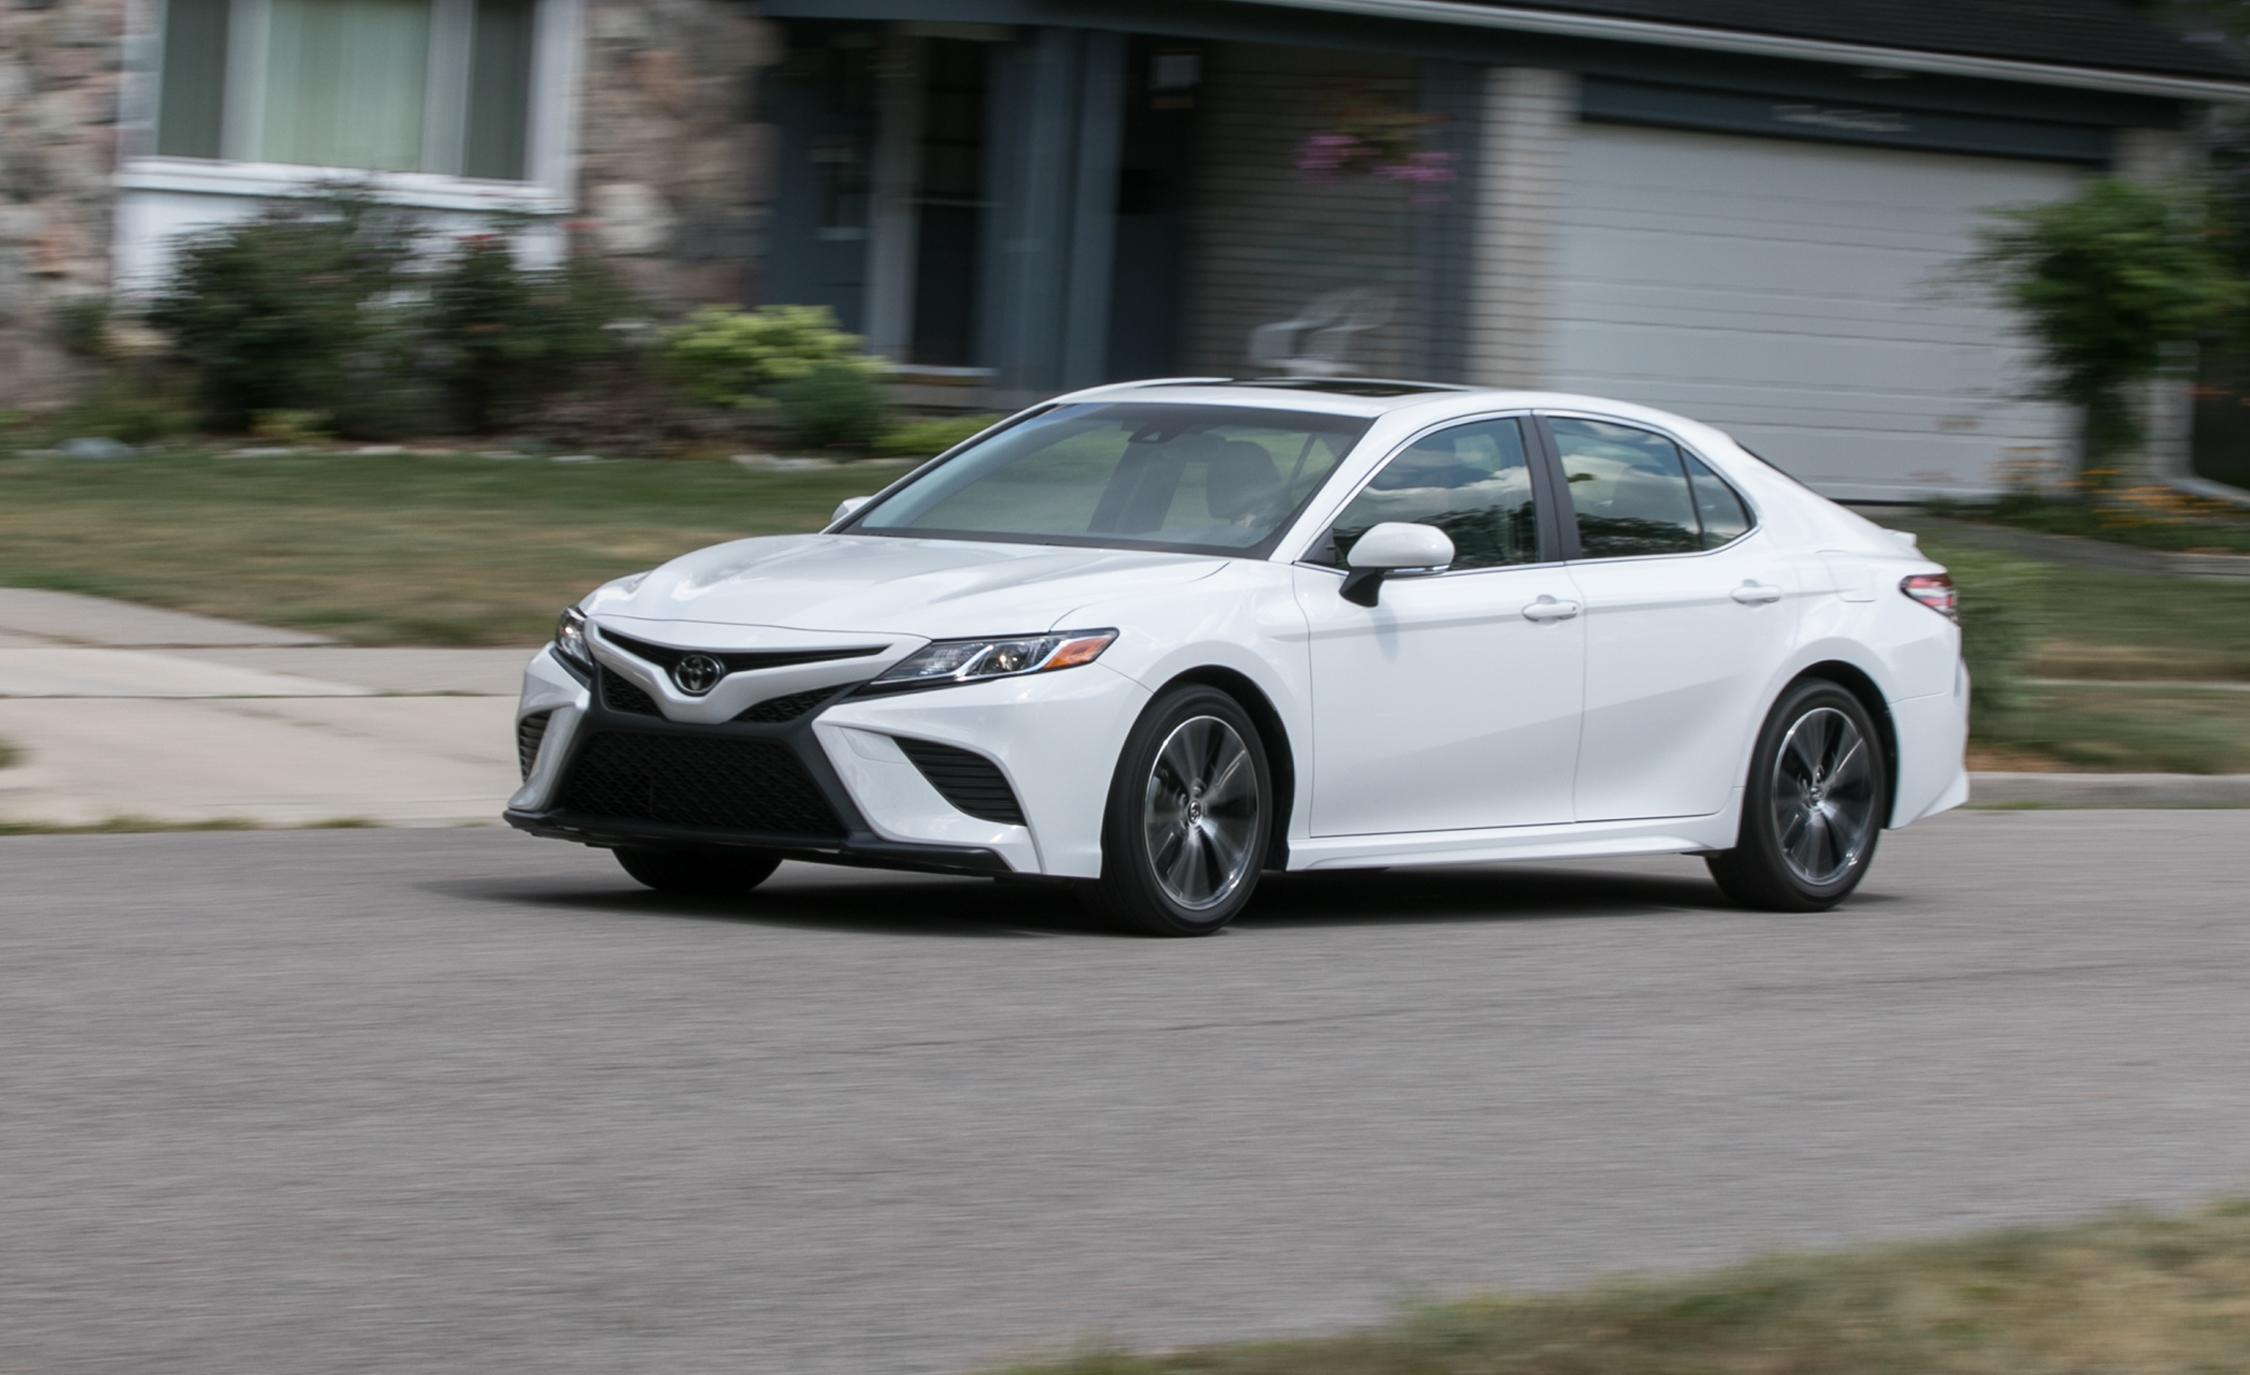 Toyota Camry Vs Honda Accord >> What Is 0 To 60 Time For 2018 Toyota Camry | Autos Post